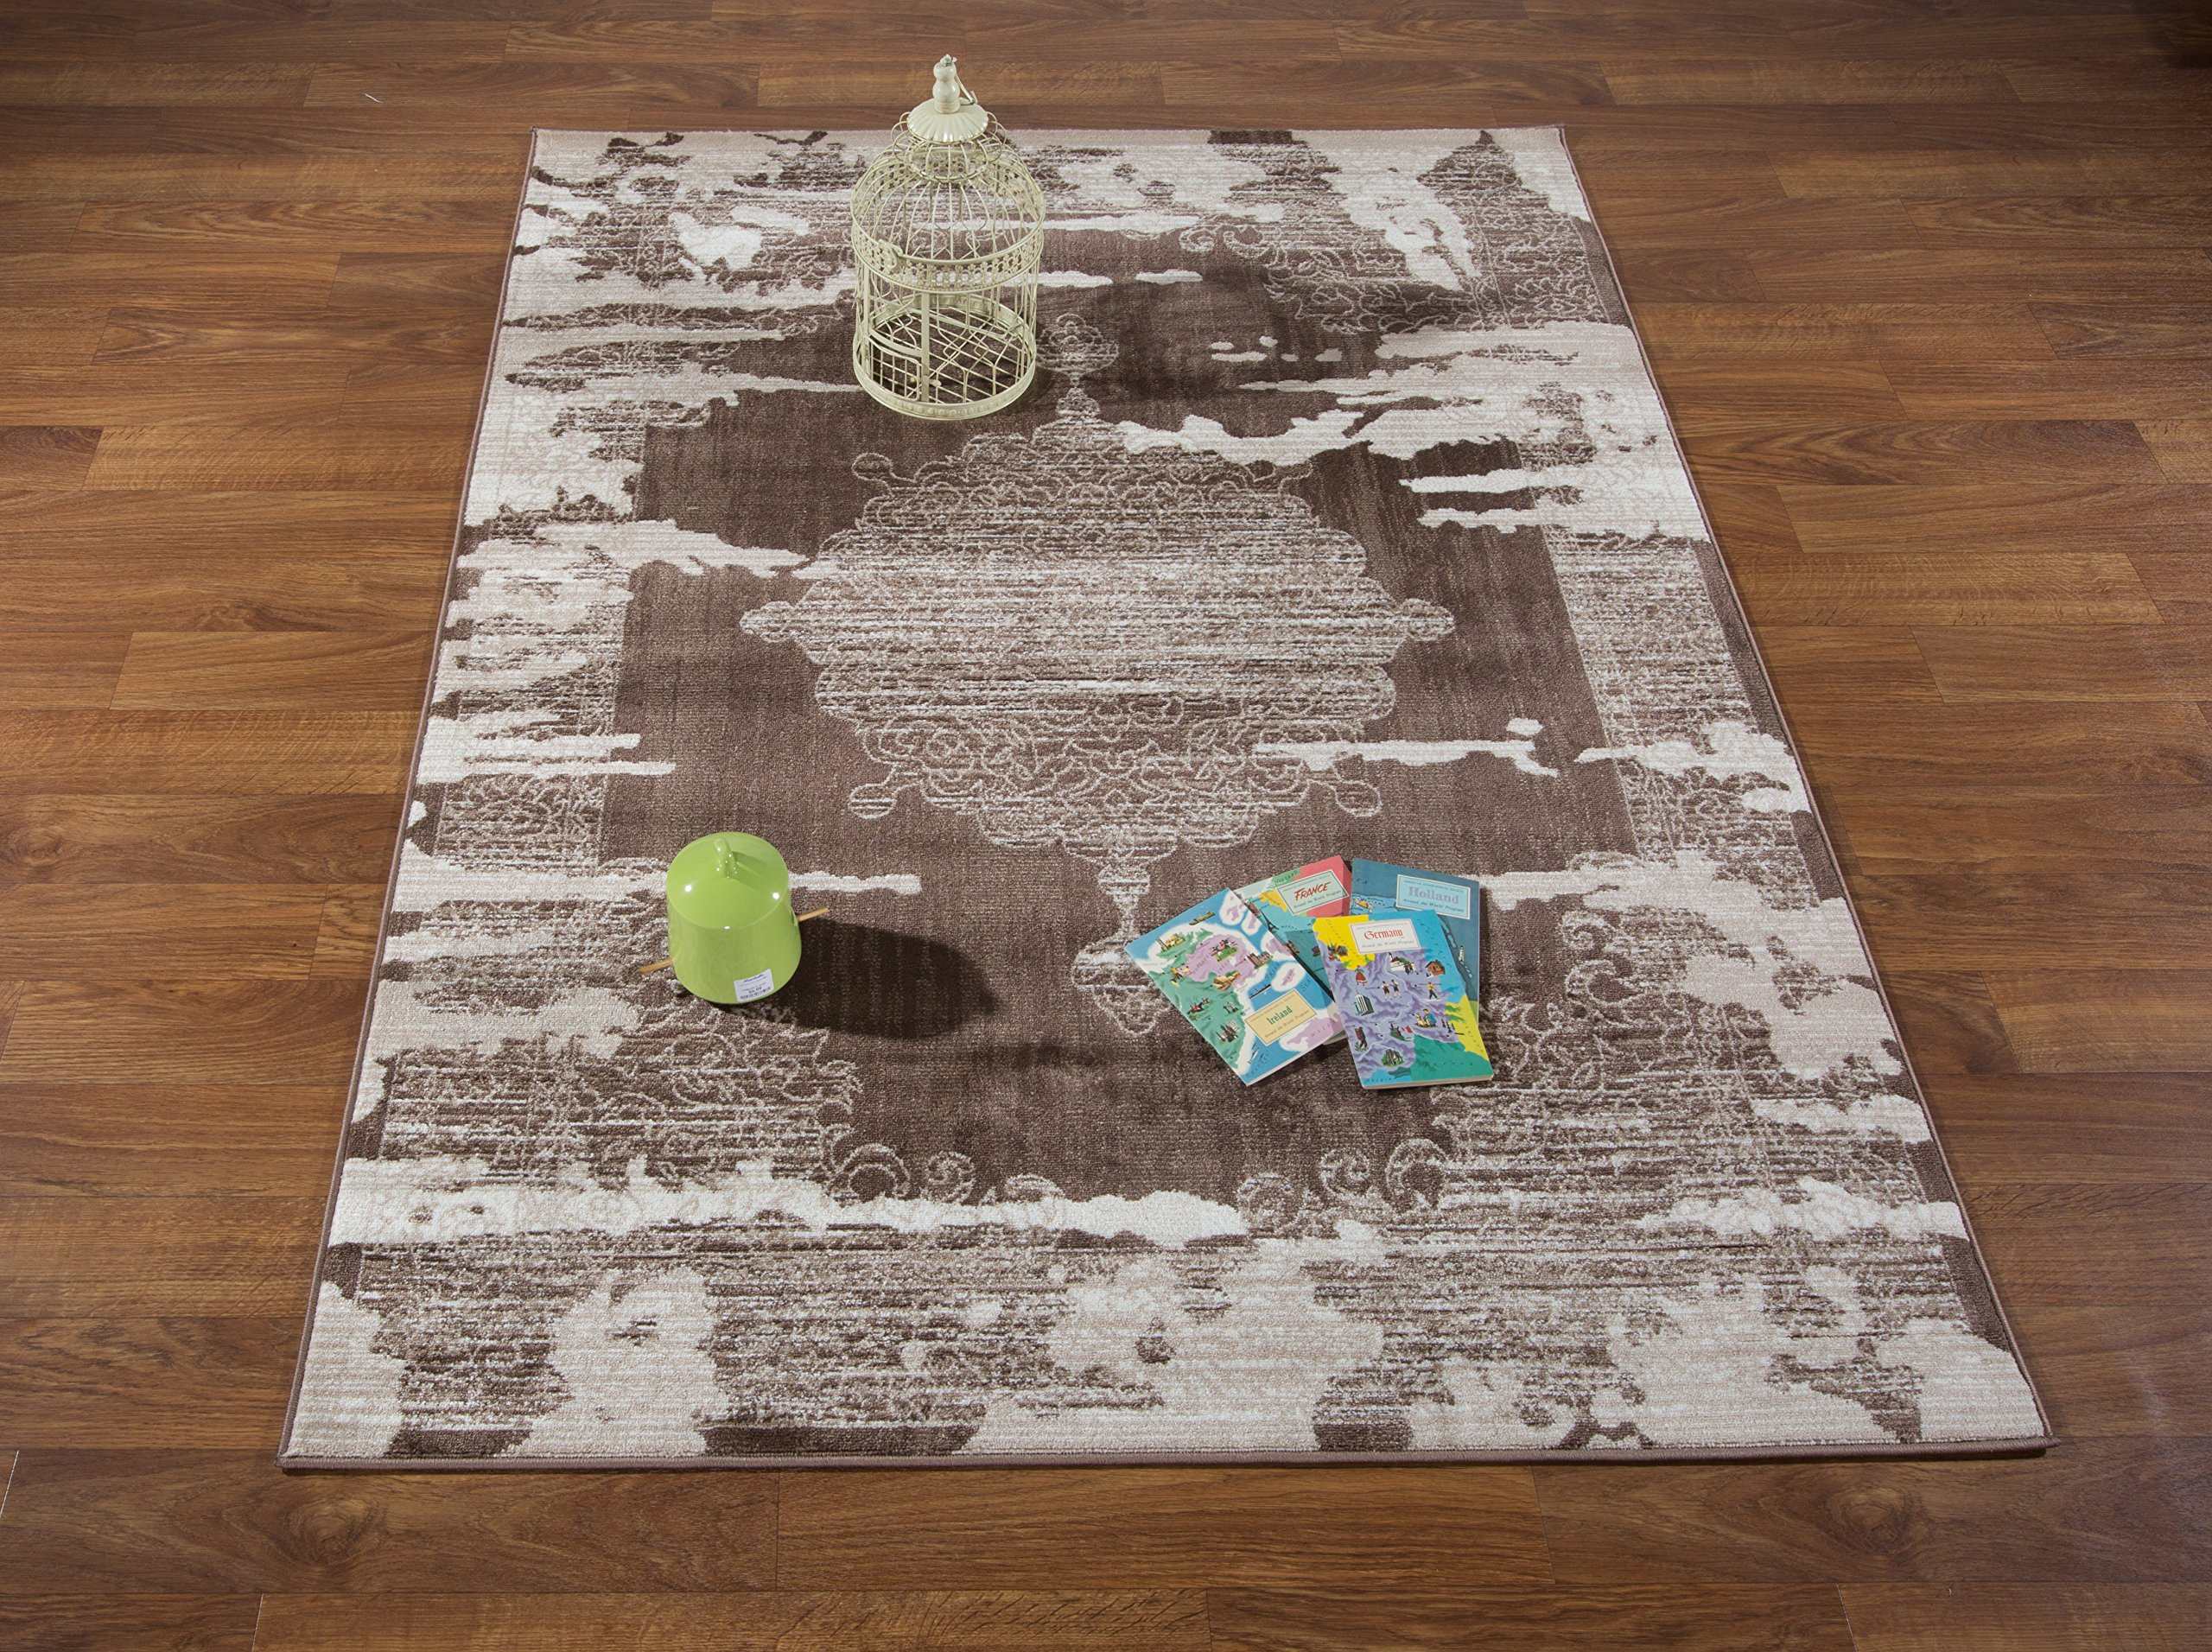 Antep Rugs Zeugma Collection Vintage Area Rug 288-Brown Beige 7'10 X 10' by Antep Rugs (Image #4)